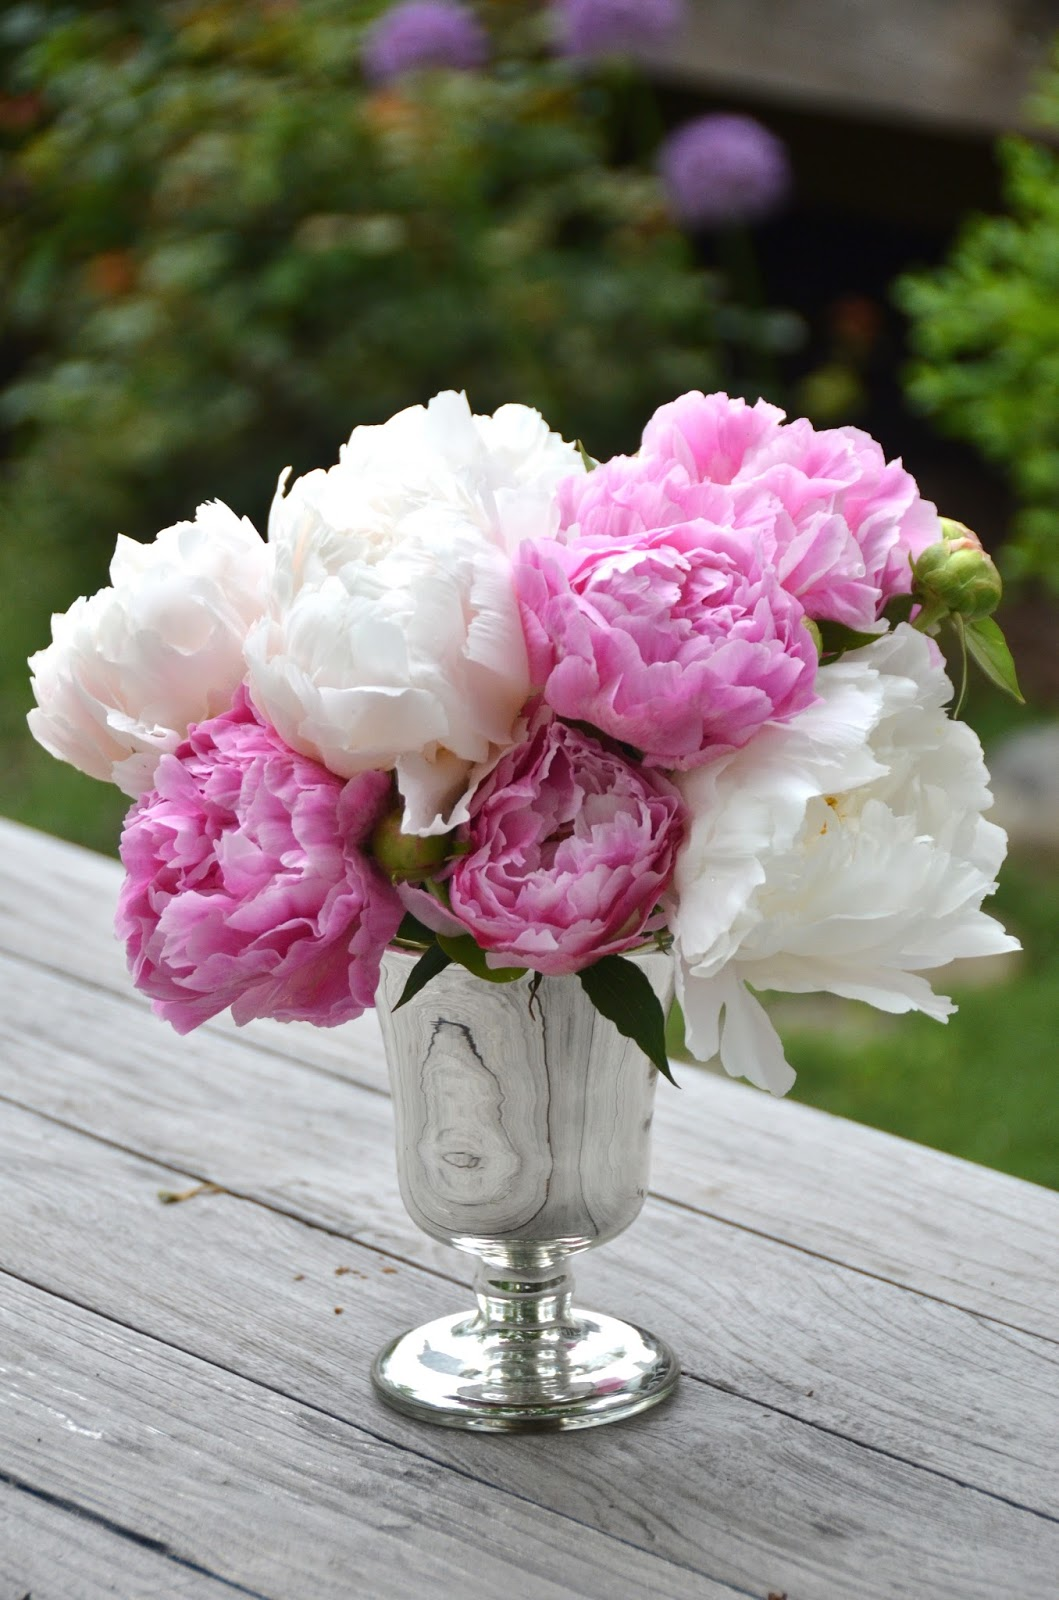 The princess and the frog blog peonies and a mercury glass vase years ago while on a community house tour i spotted a mercury glass vase with peonies in it and immediately fell hard for it as it was a decorators home reviewsmspy